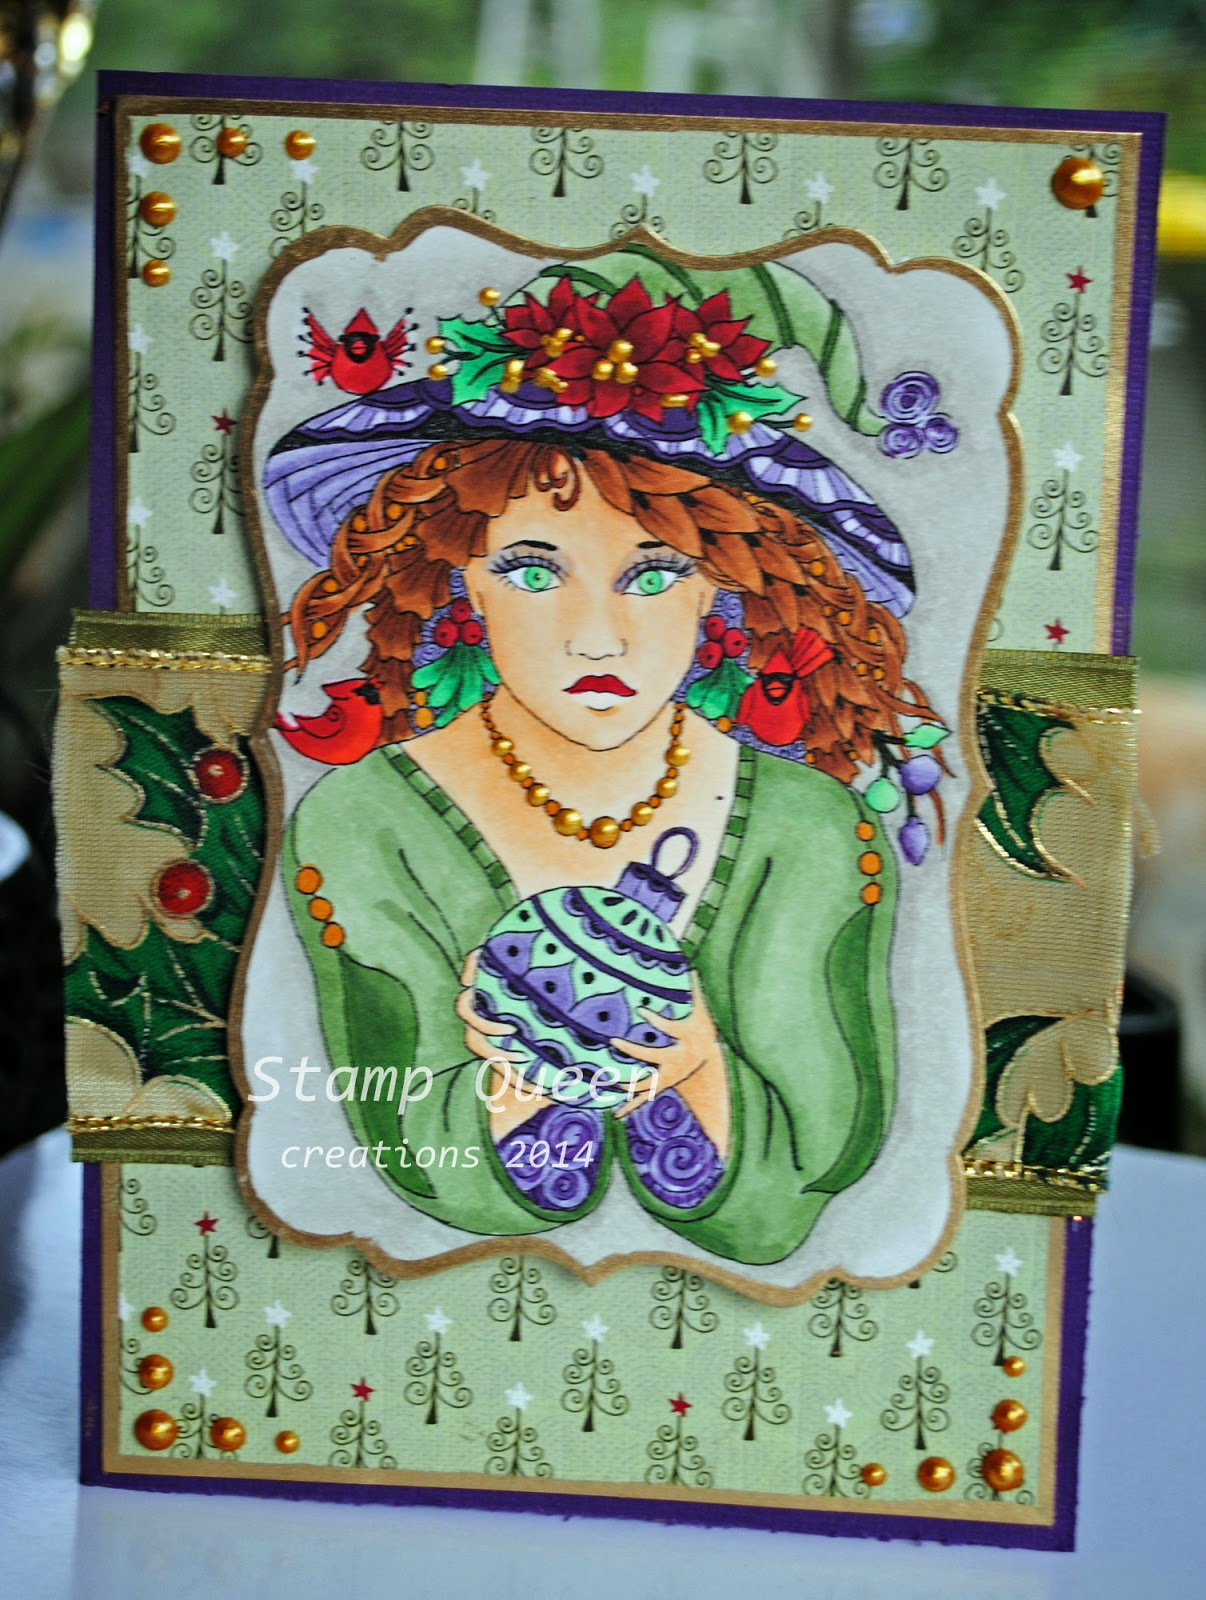 Sweet Pea Stamps: The Gift By Norma J Burnell